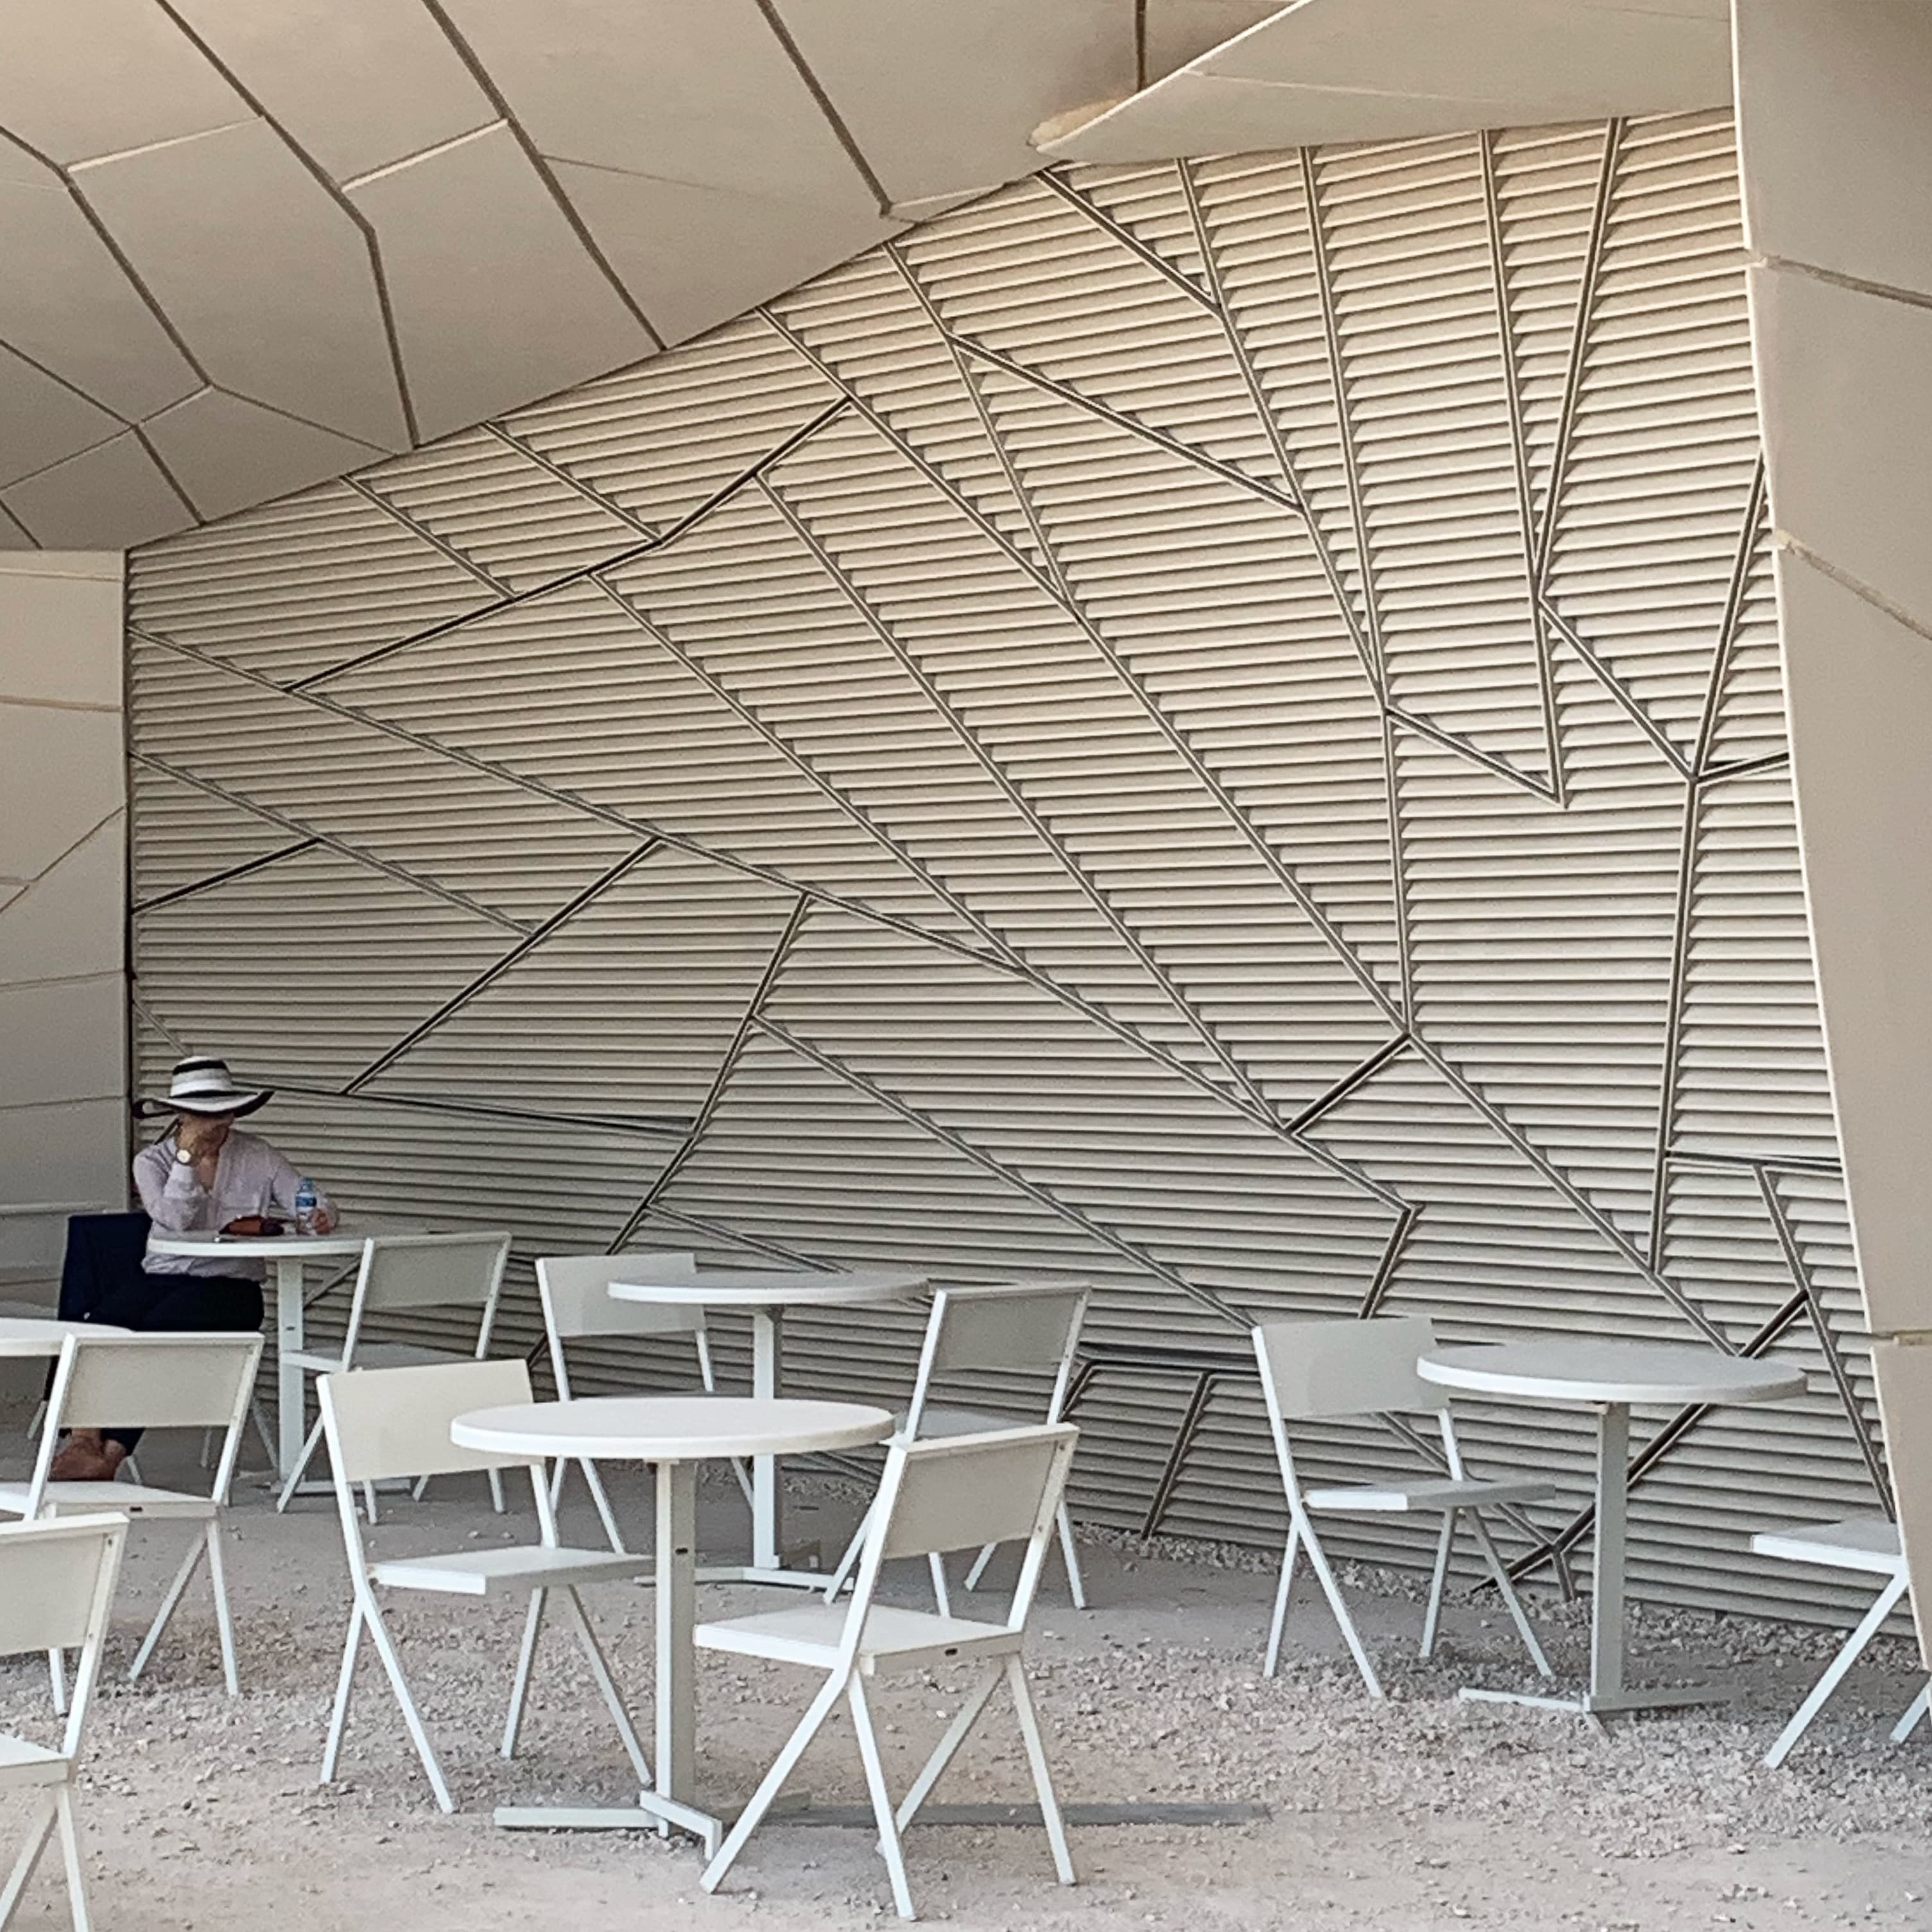 A visitor sits at the museum's outdoor café.